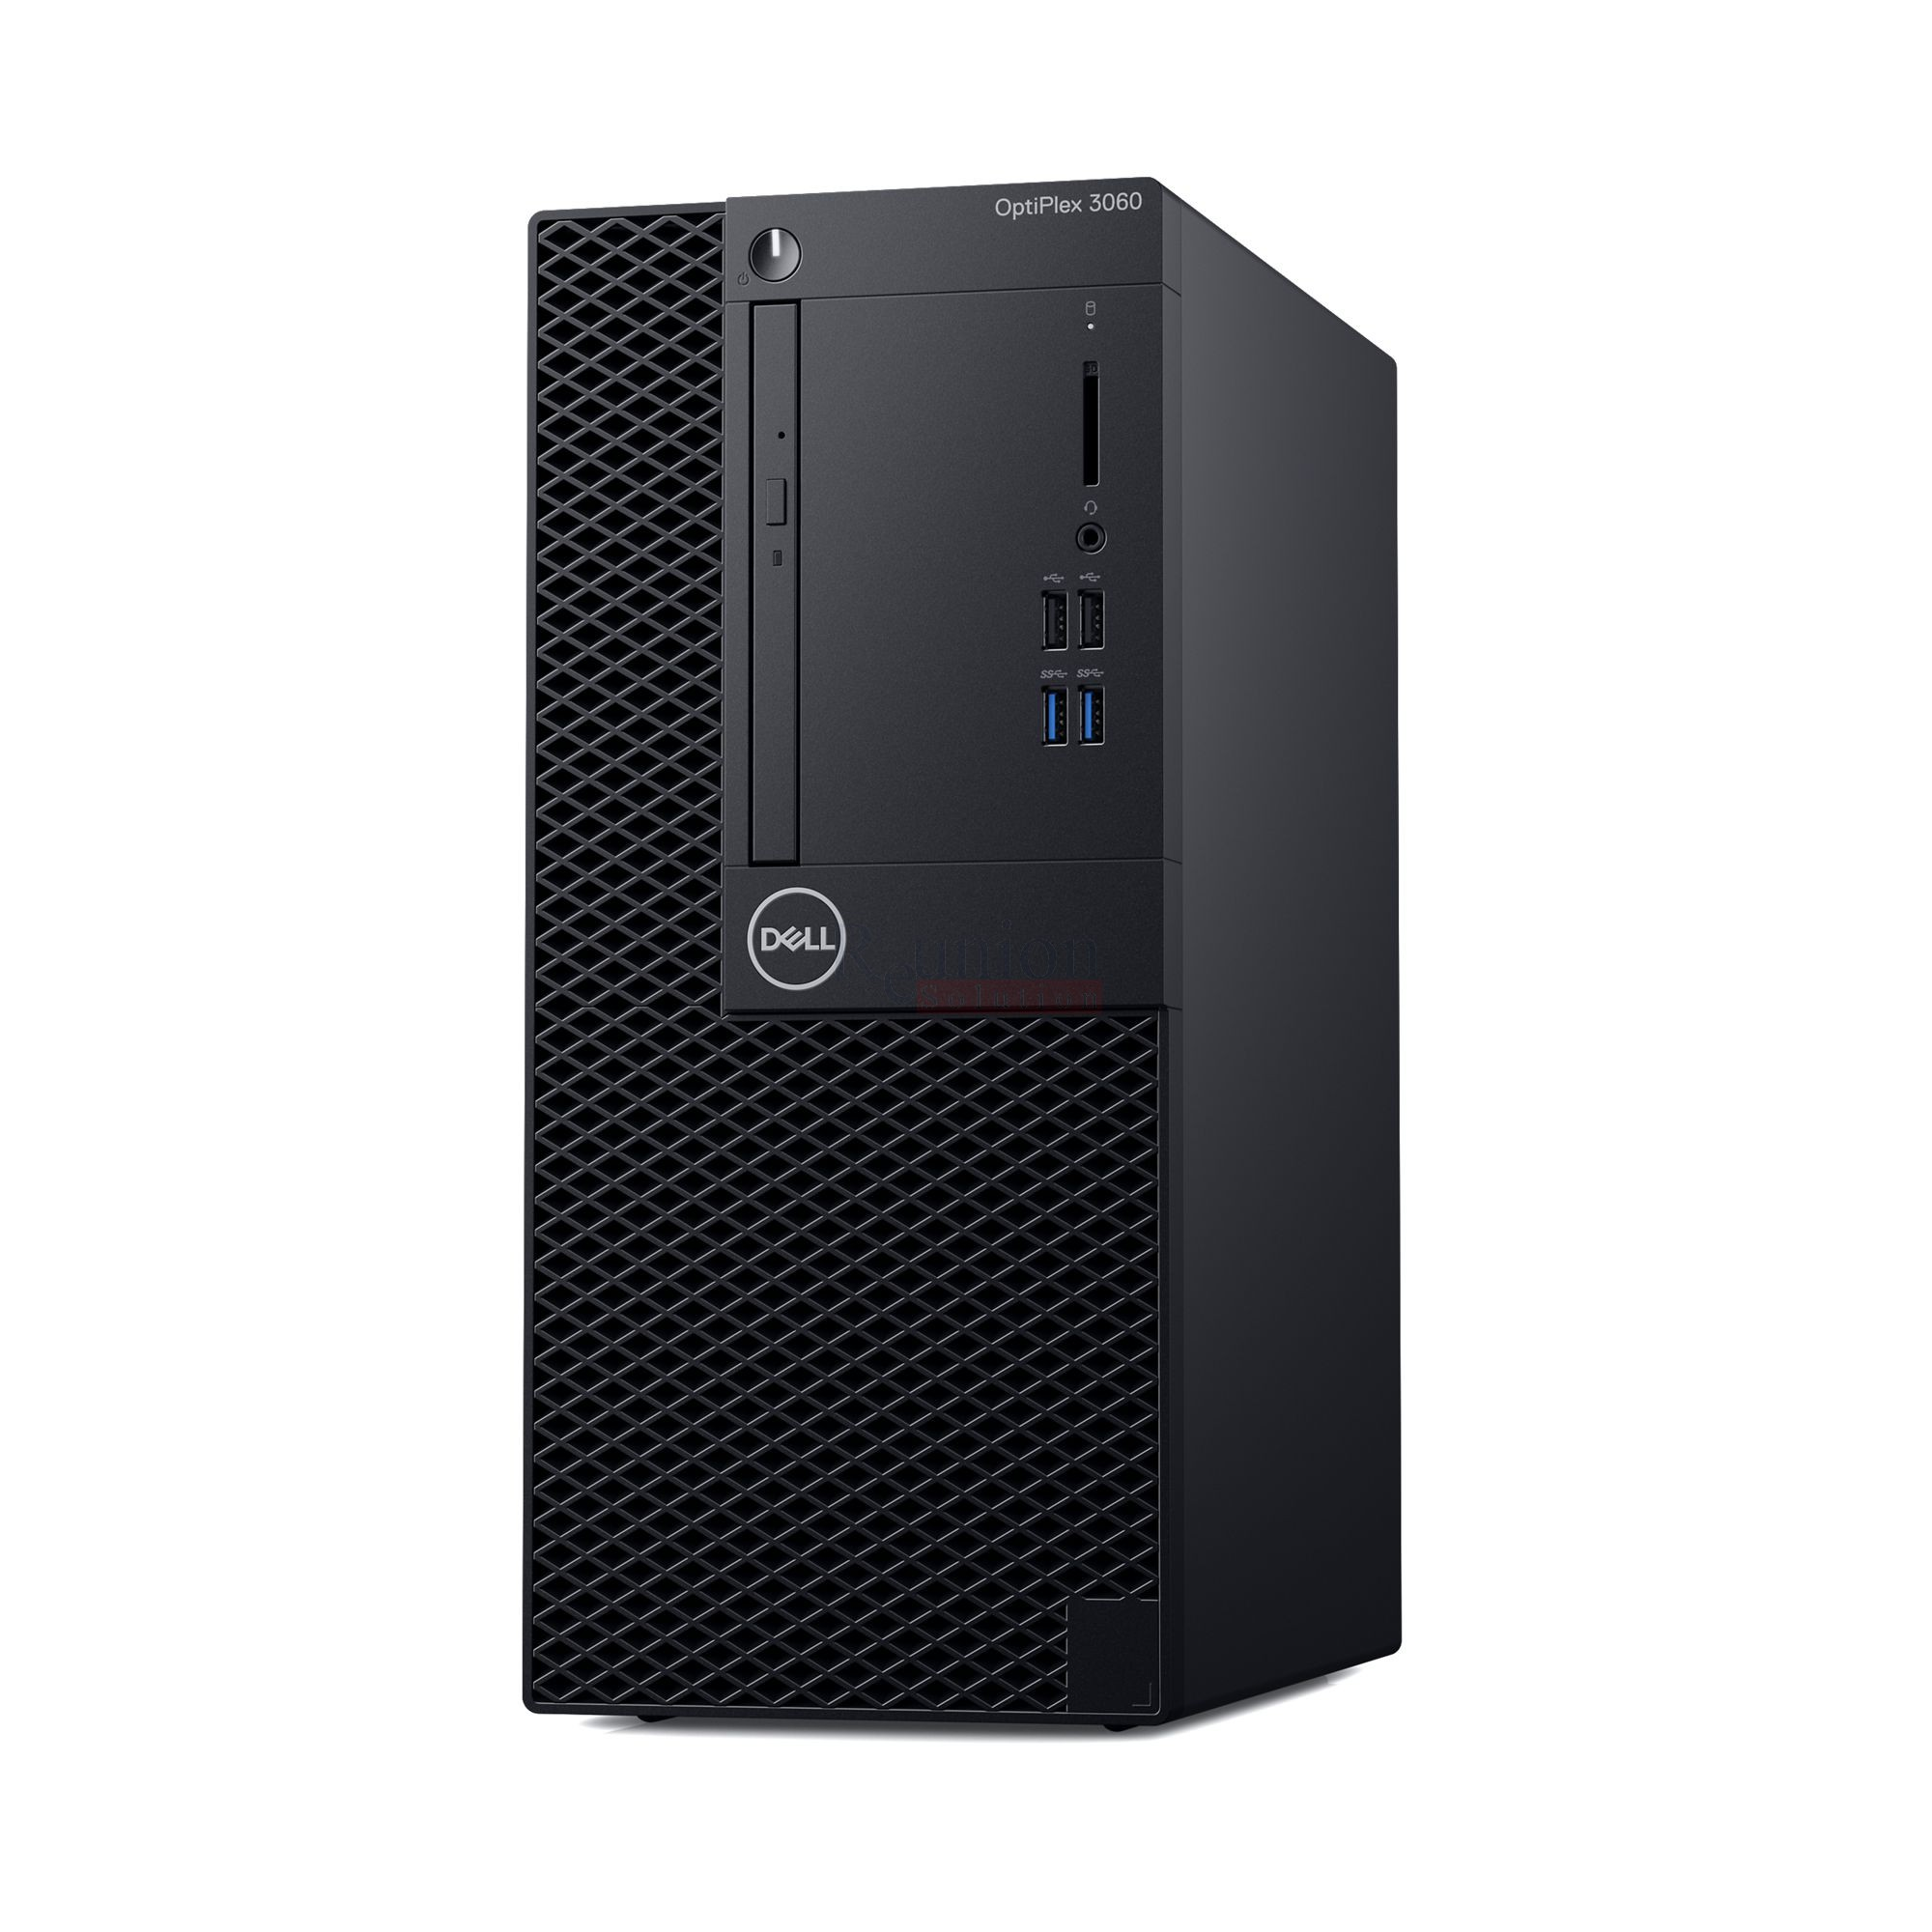 DEL-SNS36MT007	3060MT i7-8700 8G 2TB Ubu (ICT3)  Intel® Core™ i7-8700 (6 Cores,12MB Cache, 3.2GHz up to 4.6GHz,65W)